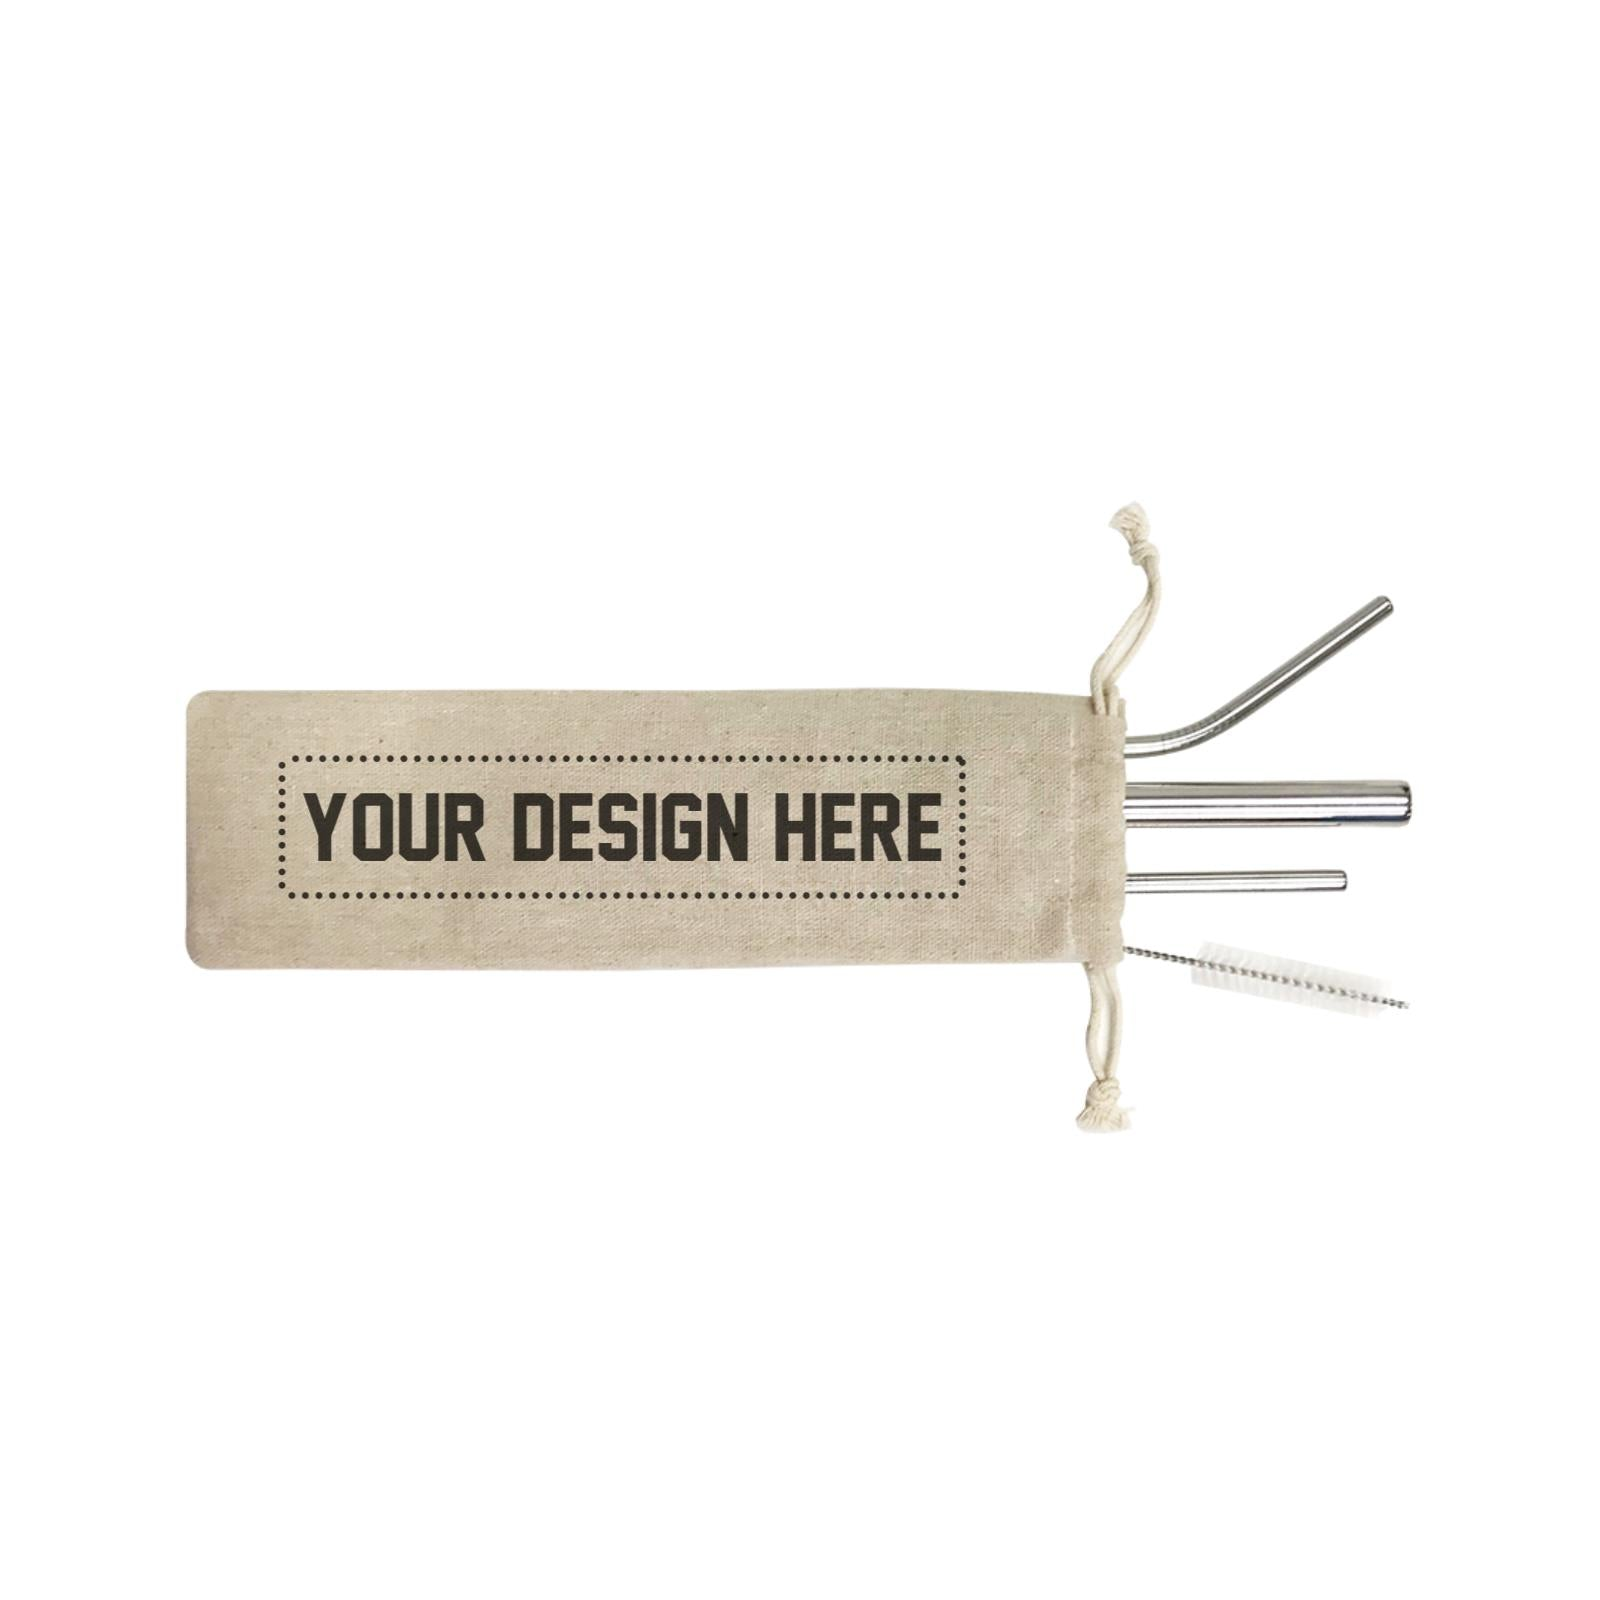 Custom Your Own Design SB 4-in-1 Stainless Steel Straw Set In a Satchel